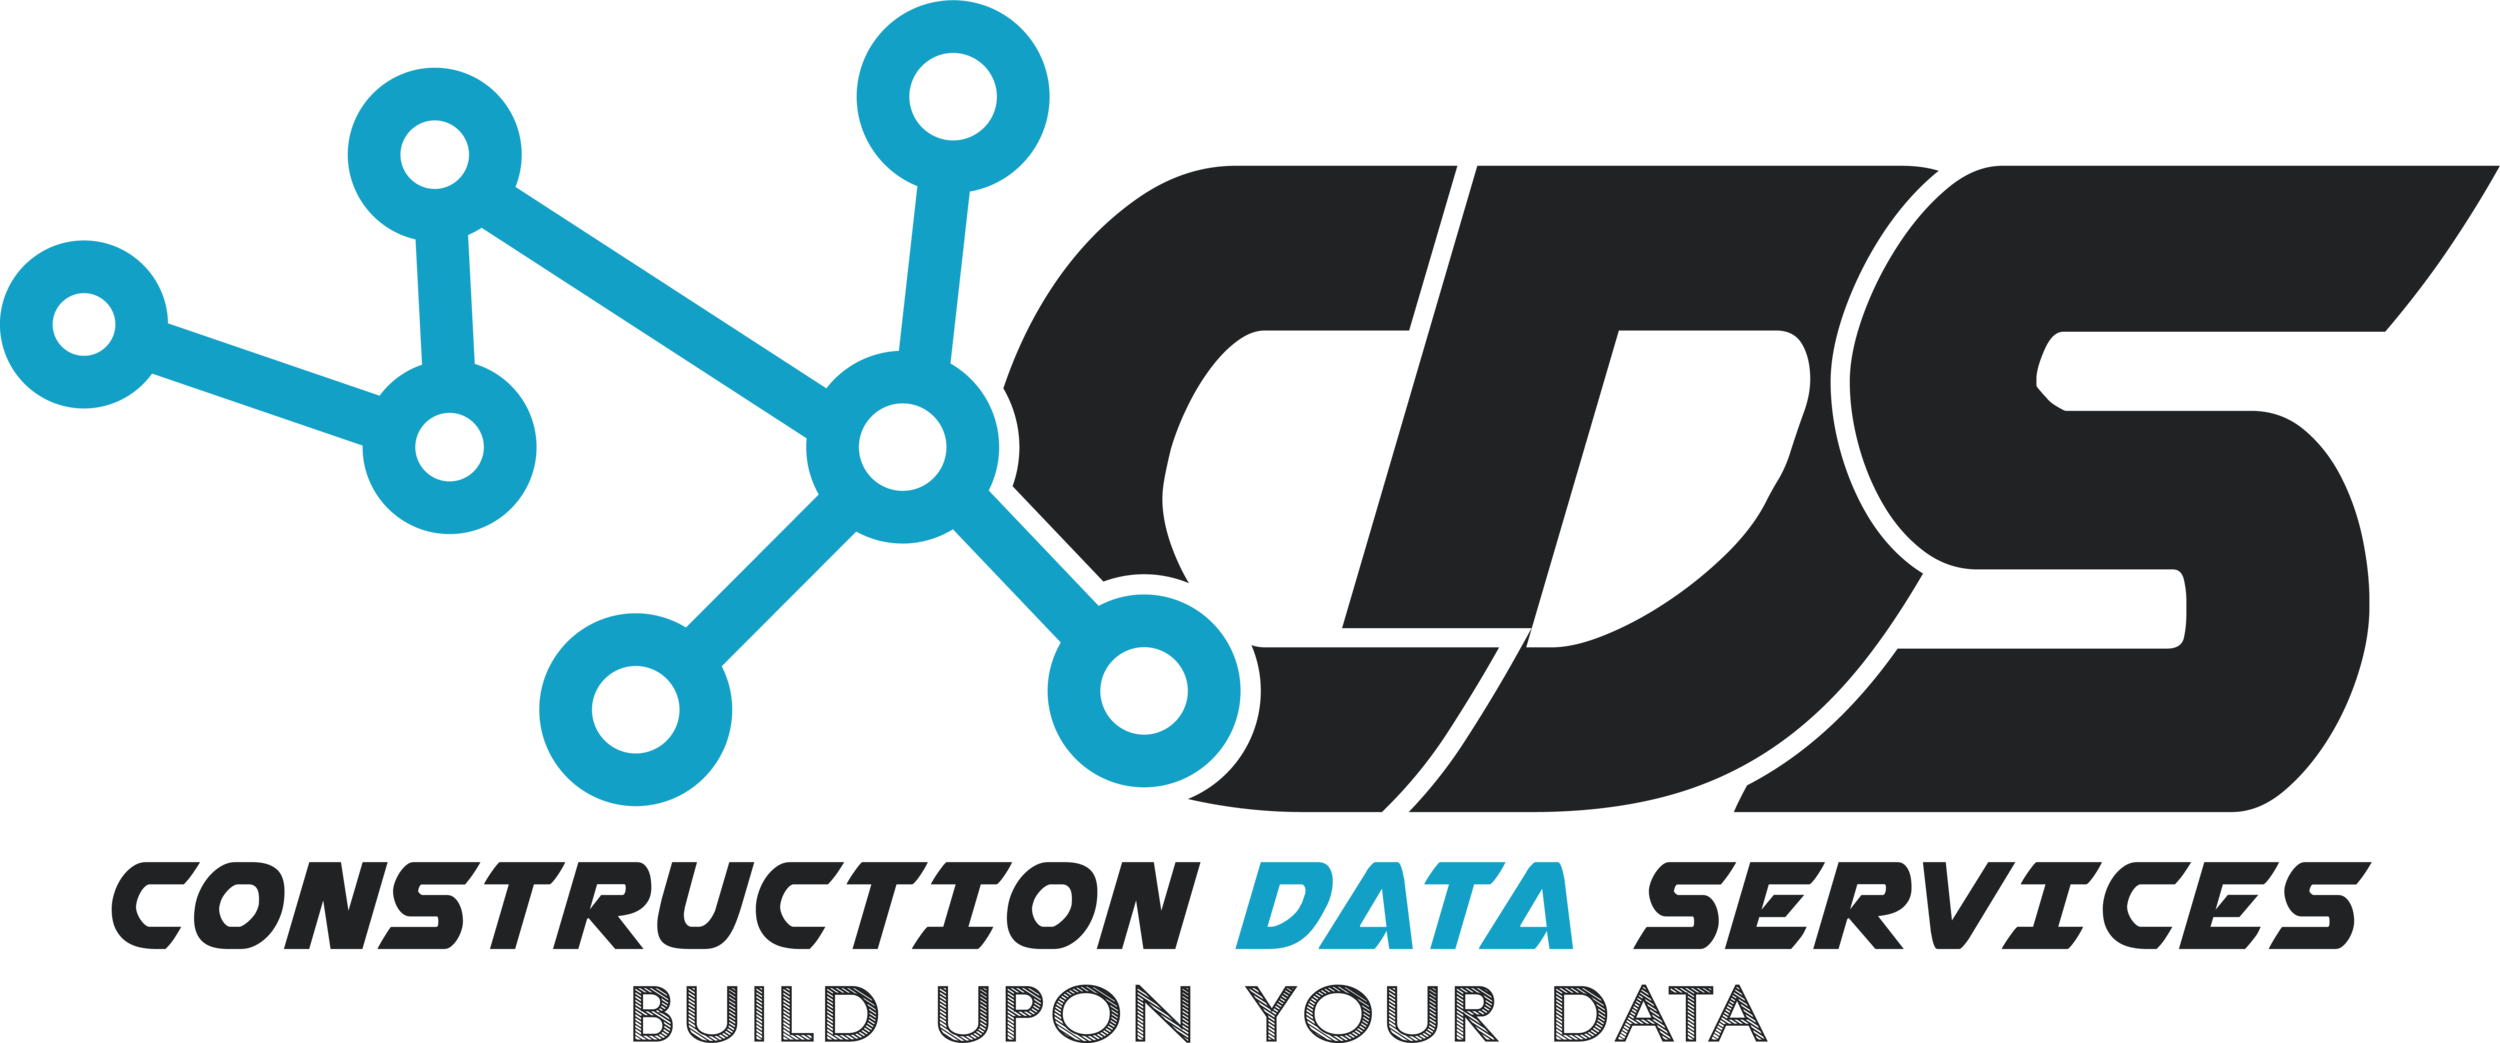 Construction Data Services Logo.png